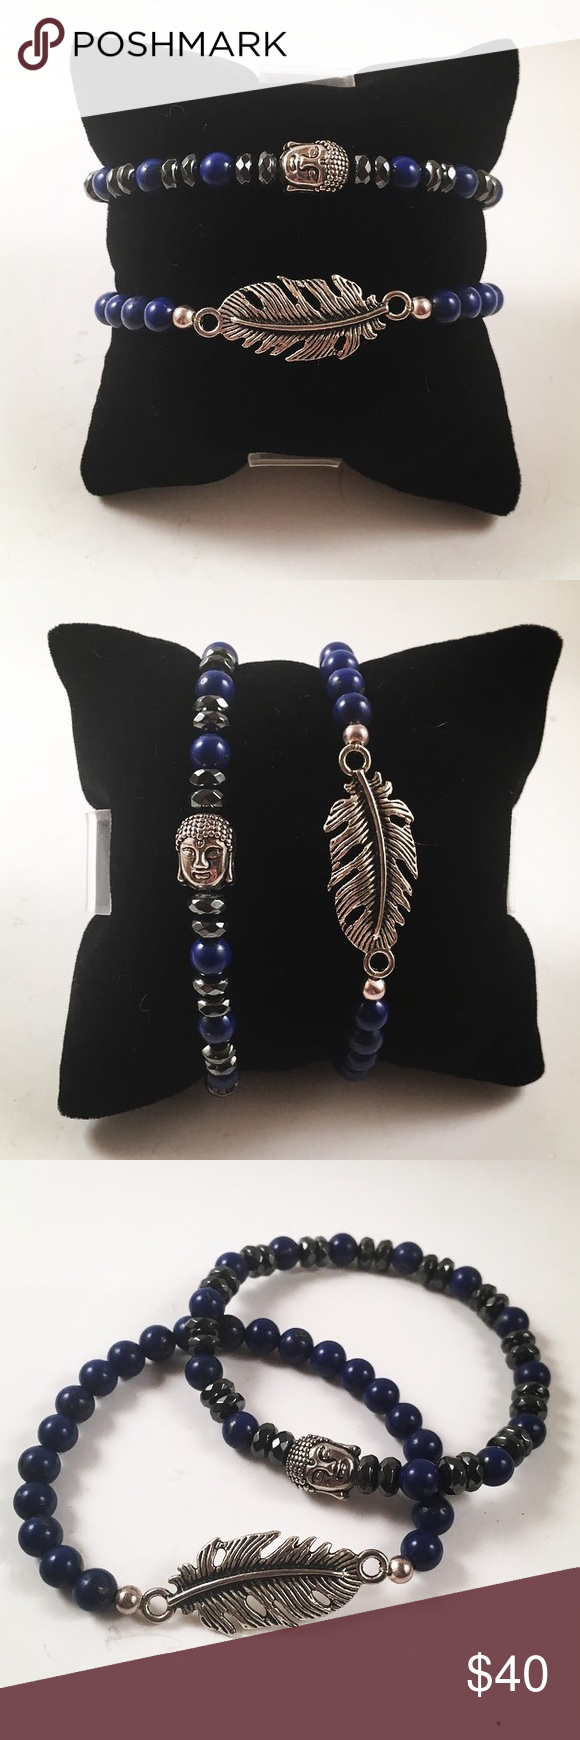 Set of two bracelets.Buddha/leaf/boho/gemstones Set of two bracelets. Handmade, never worn by anyone. One has a buddha charm , the other one has a leaf. Made out of tibetan silver for charms and blue lapis and hematite gemstones. Fits 6 to 7 inch wrist. I ship fast!!✈️ Free gift with every purchase!! Jewelry Bracelets